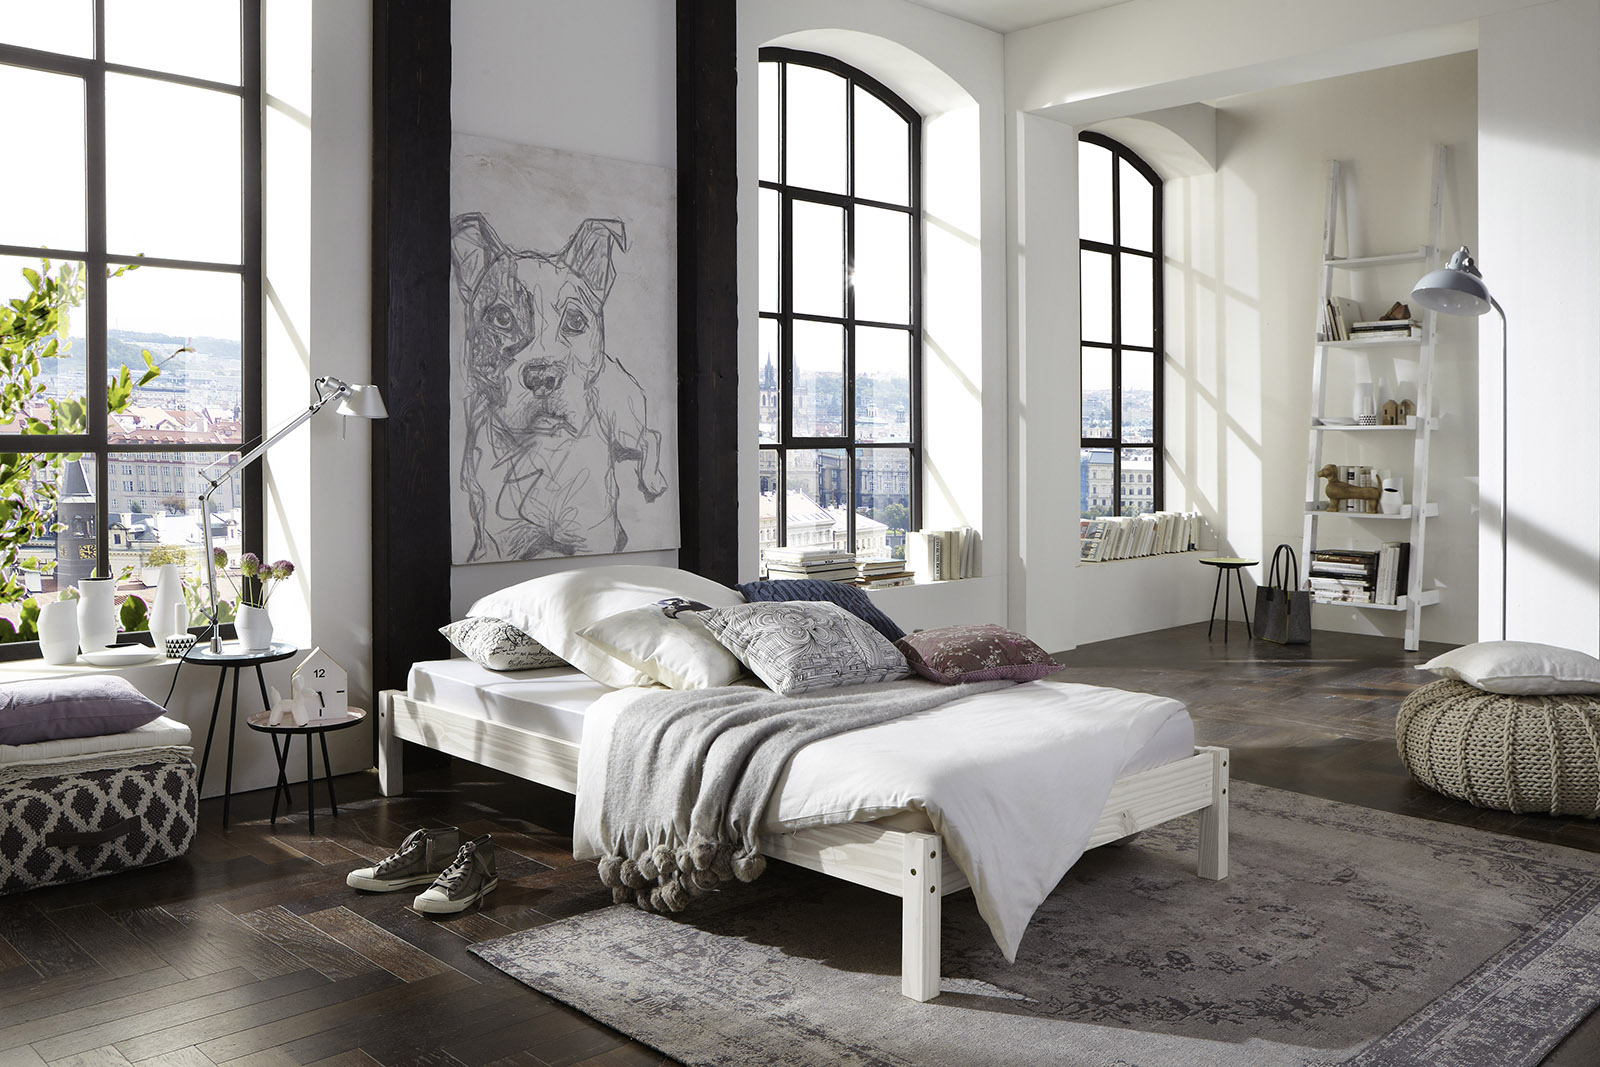 sale massivholzbett 140 x 200 cm g nstig kiefernholz wei sina. Black Bedroom Furniture Sets. Home Design Ideas